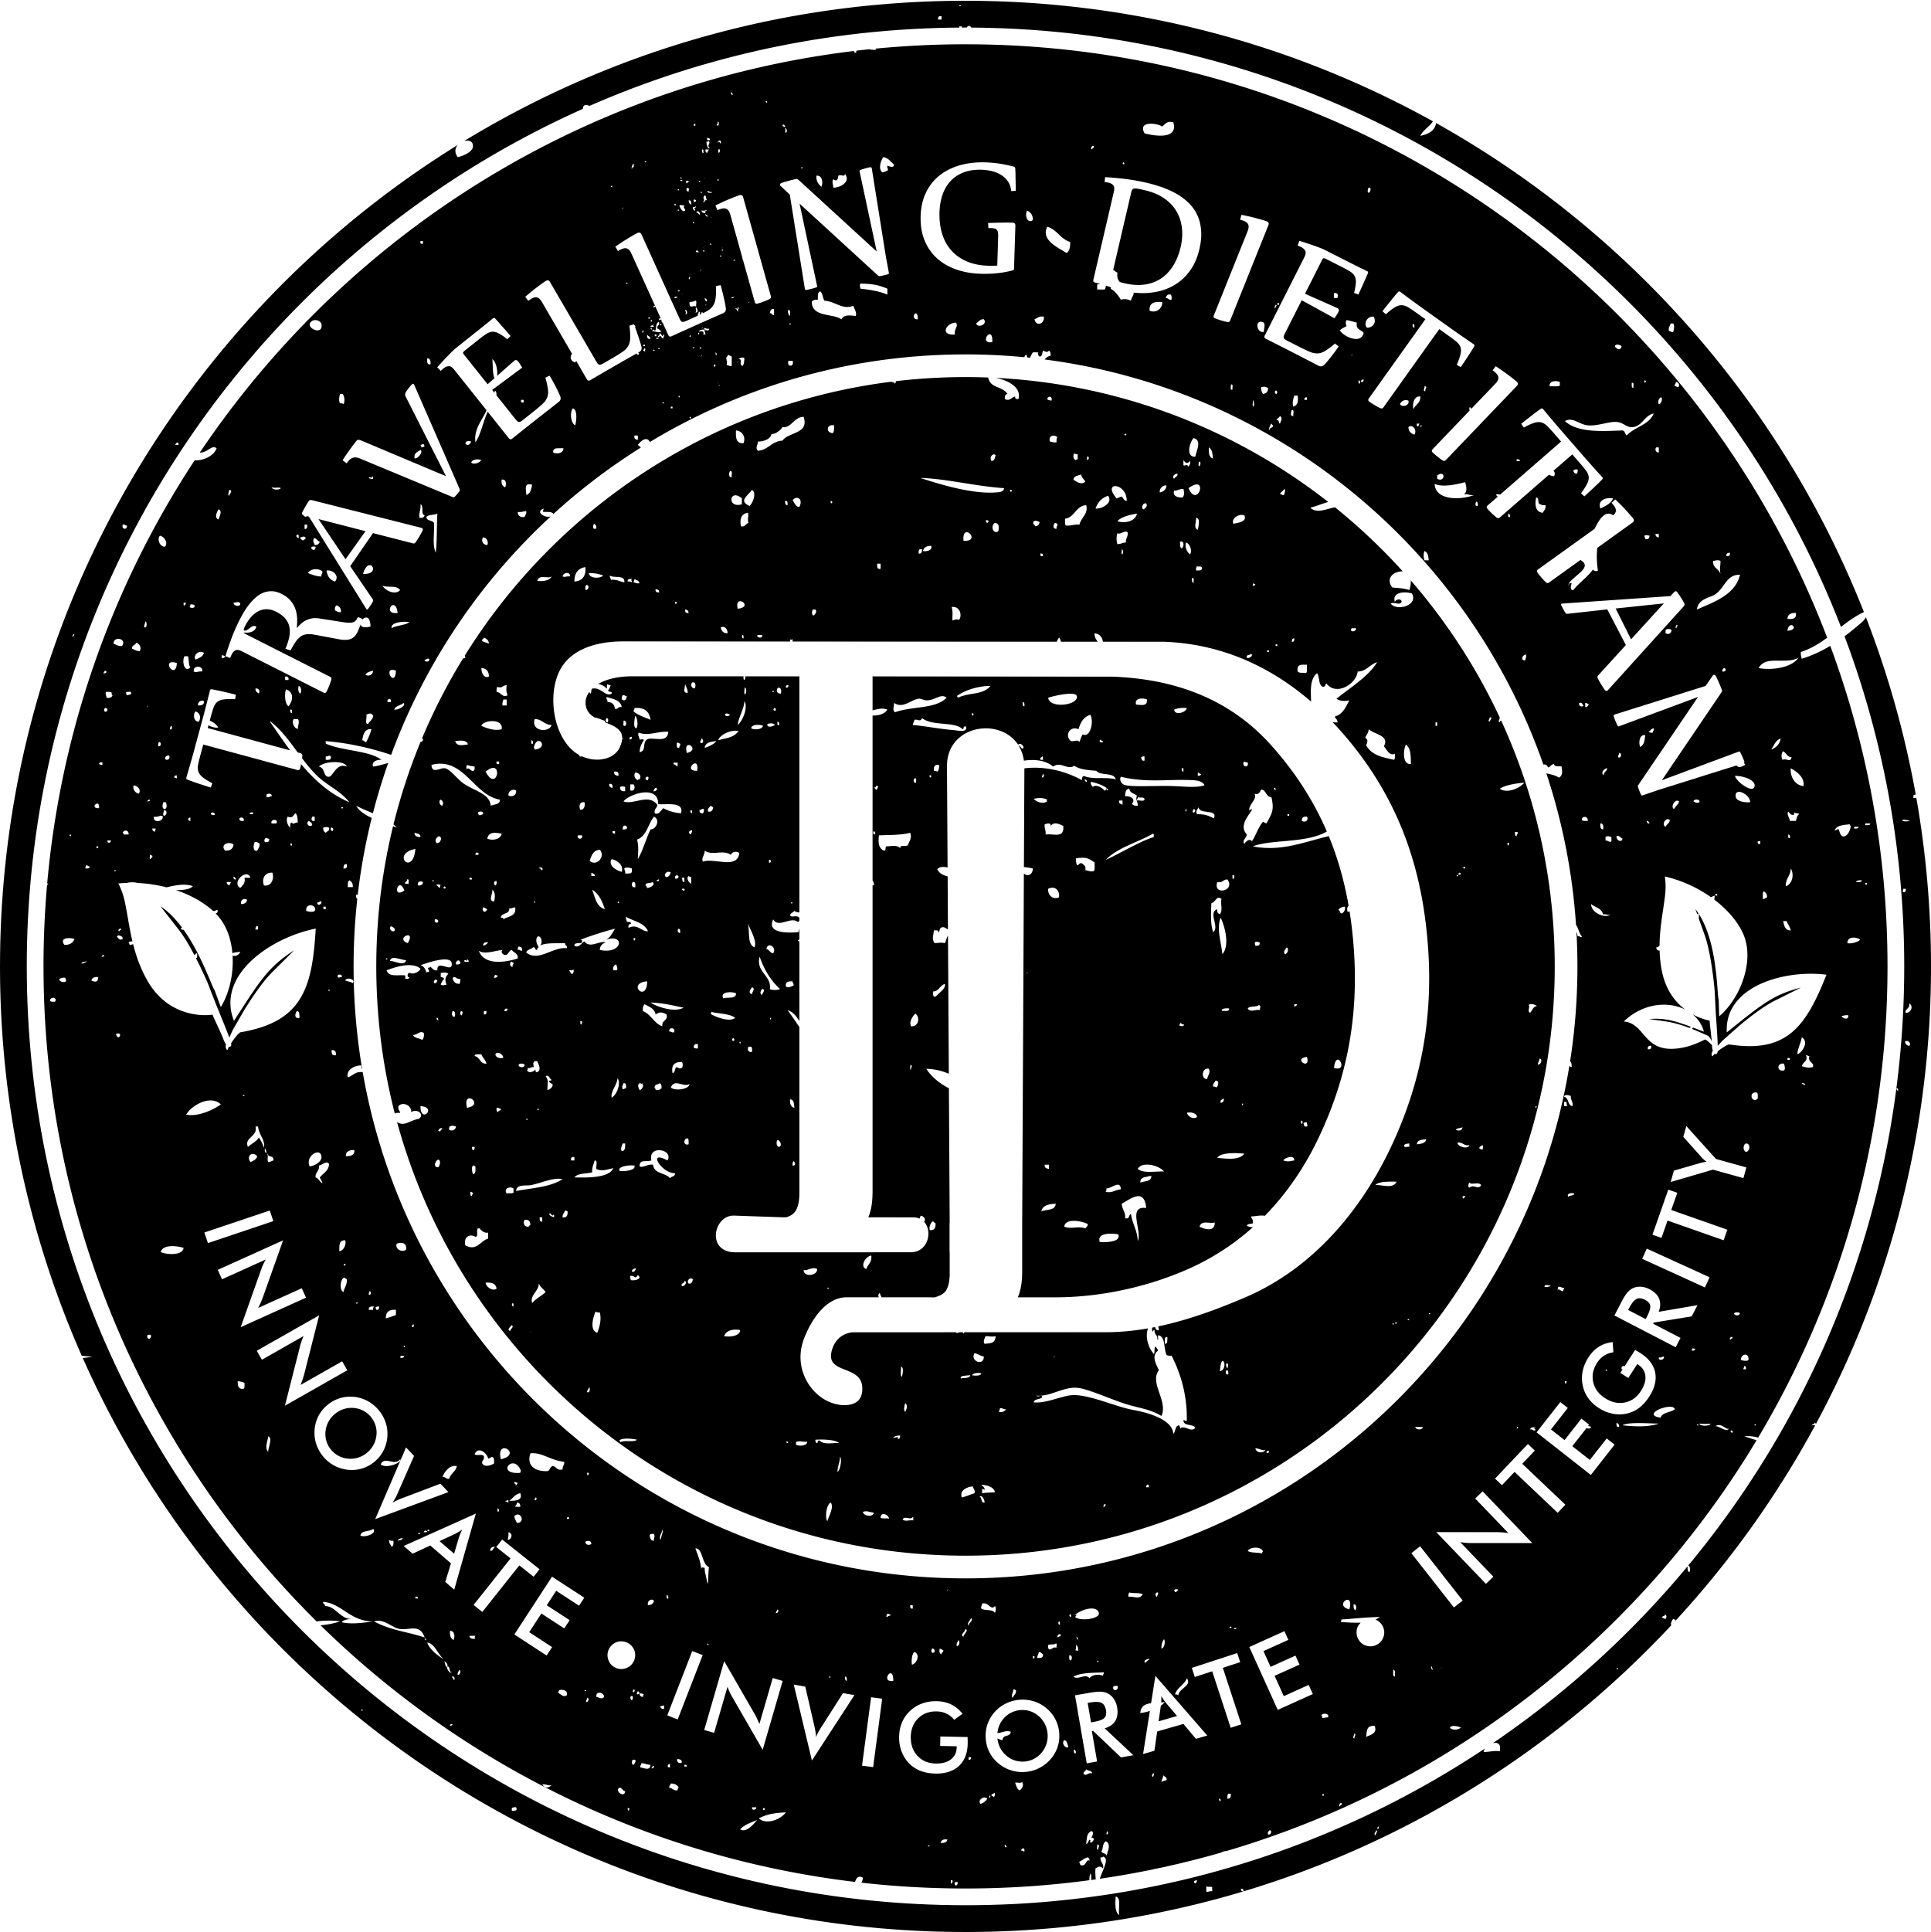 Travelling Dietitian